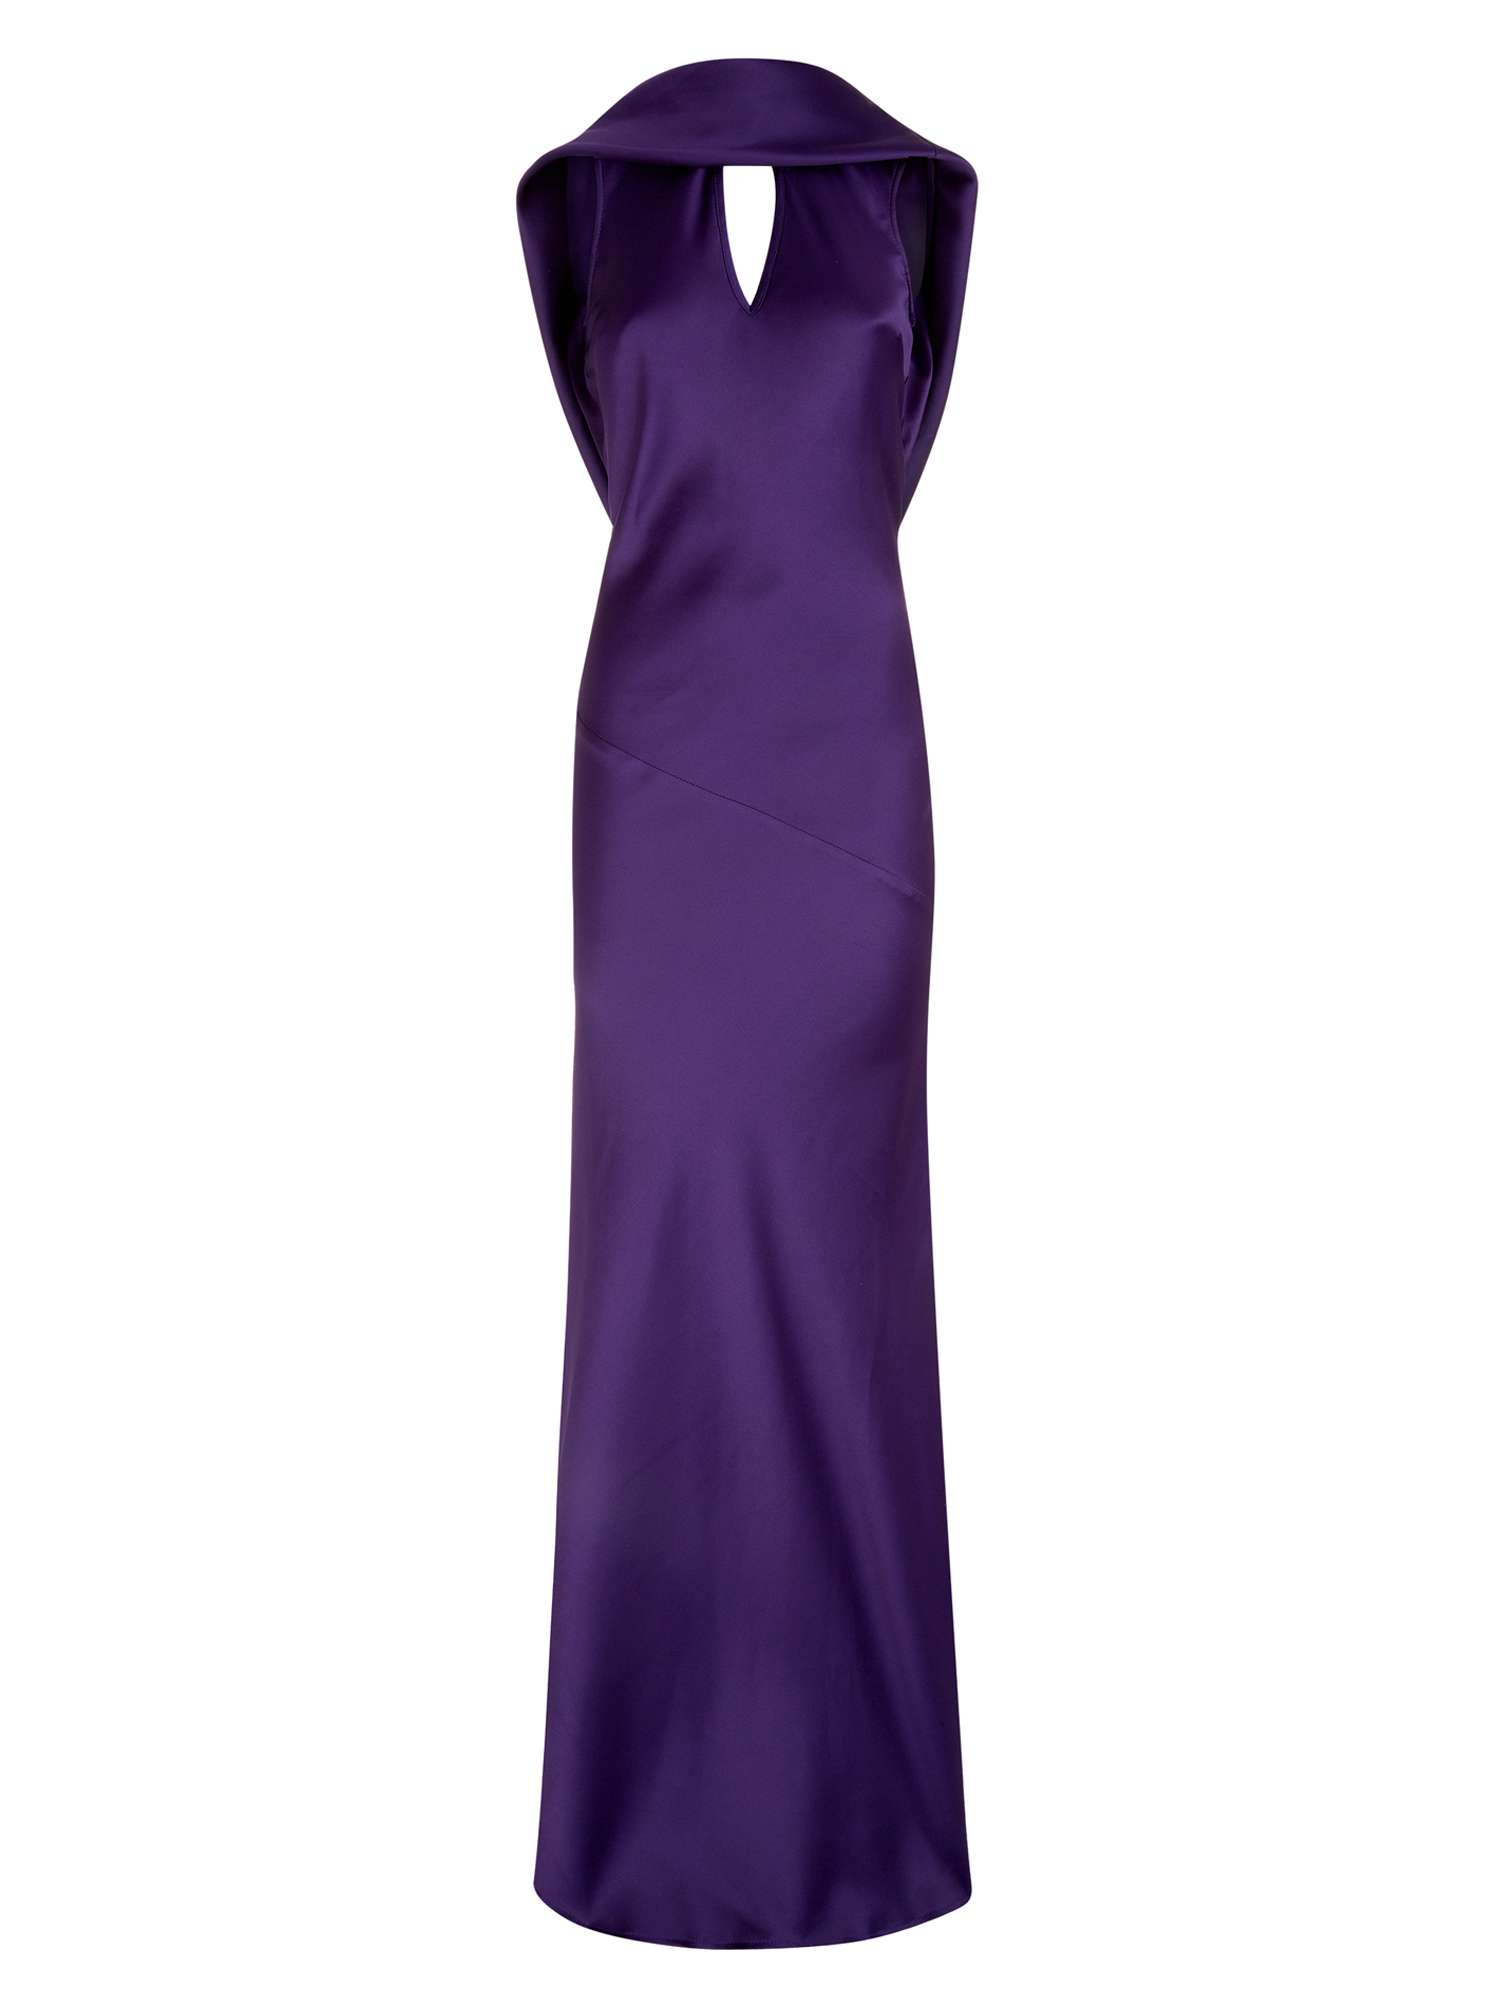 Blue Gowns | Shop Evening Gowns - House of Fraser